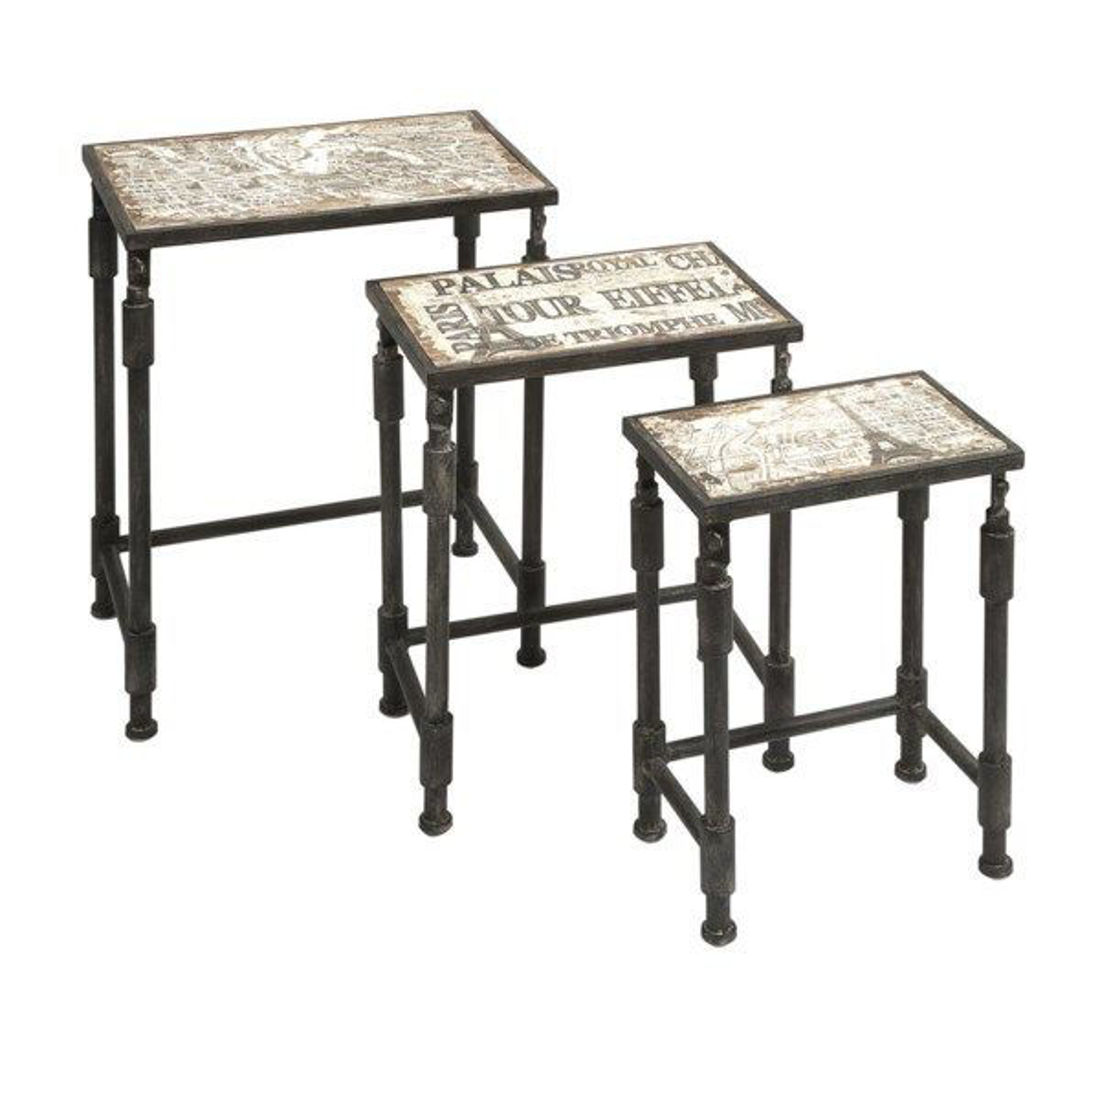 Picture of KNOXLIN NESTING TABLES - SET OF 3